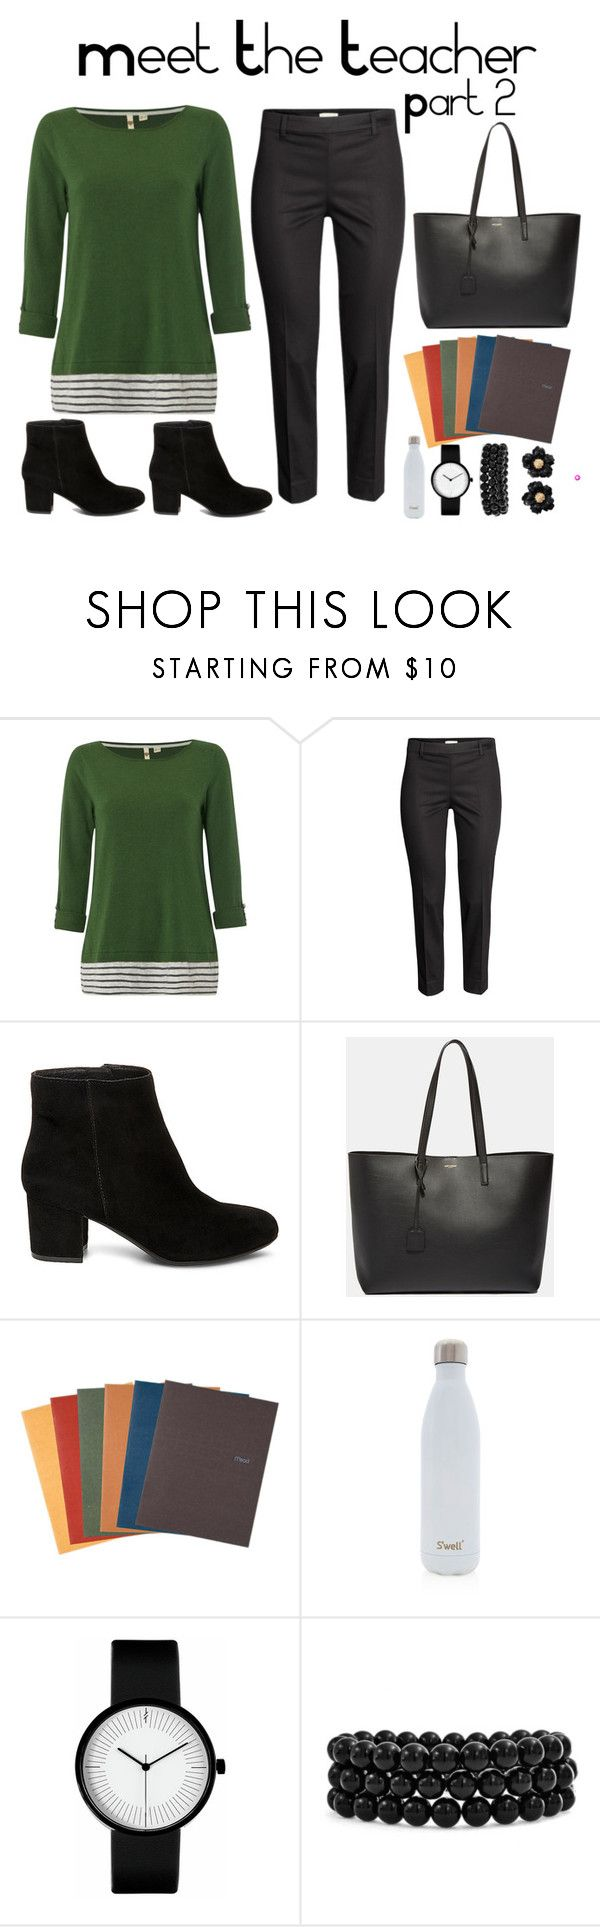 Meet the Teacher Contest Entry by novascotias4ever on Polyvore featuring White Stuff, H&M, Steve Madden, Yves Saint Laurent, Bling Jewelry, Mead, S'well, nsfashion, nsschool and Danielas5KContest